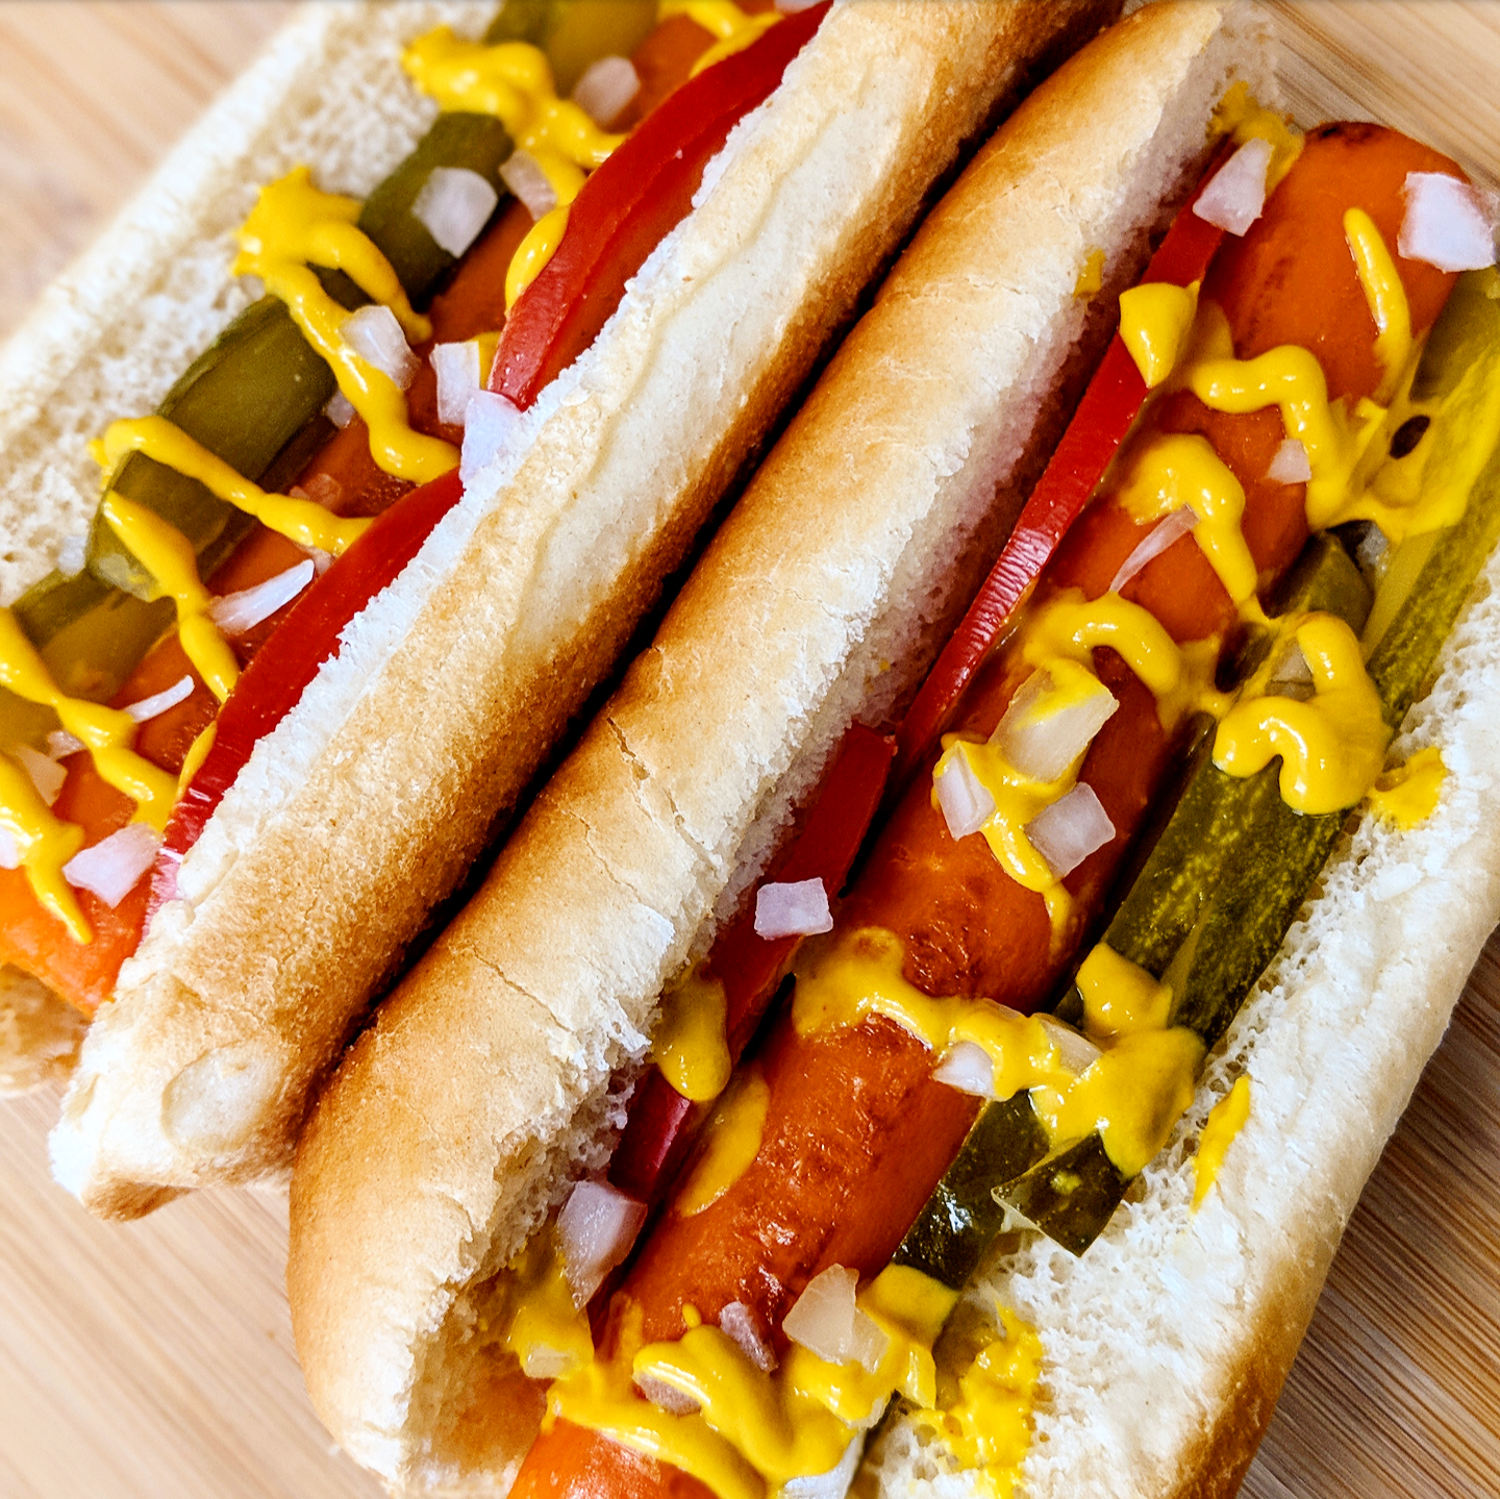 Carrot Dogs -